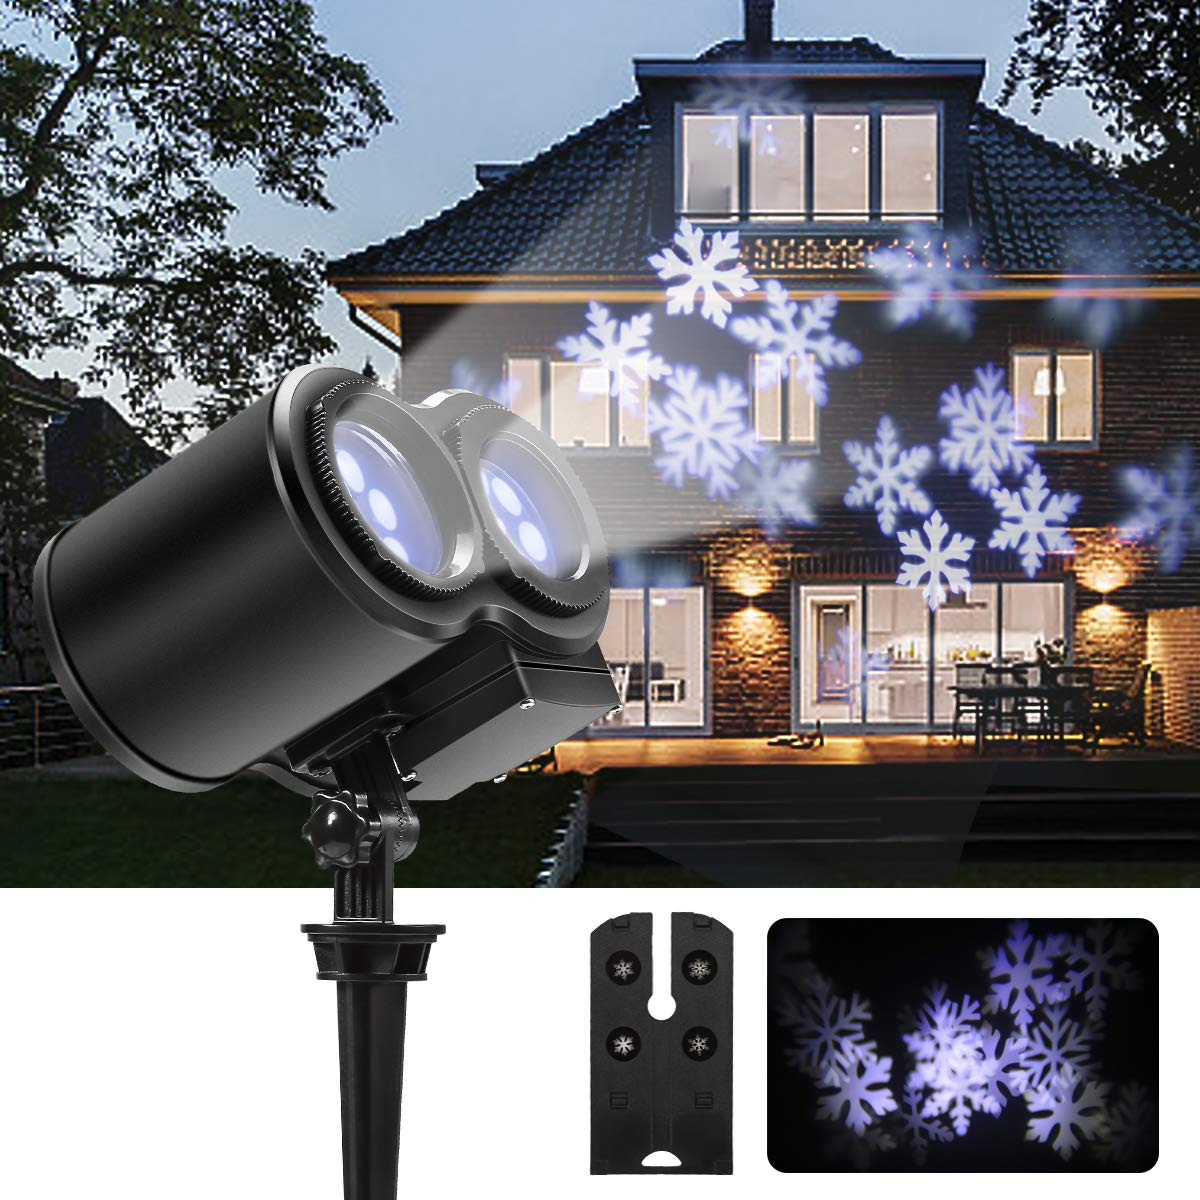 8W Christmas Projector Lights, GreenClick LED Xmas Projector Lights Double Head Snowflake Lights Projector with 8 LED Waterproof Spotlight Projector for Holiday Halloween Birthday Wedding Parties GreencClick